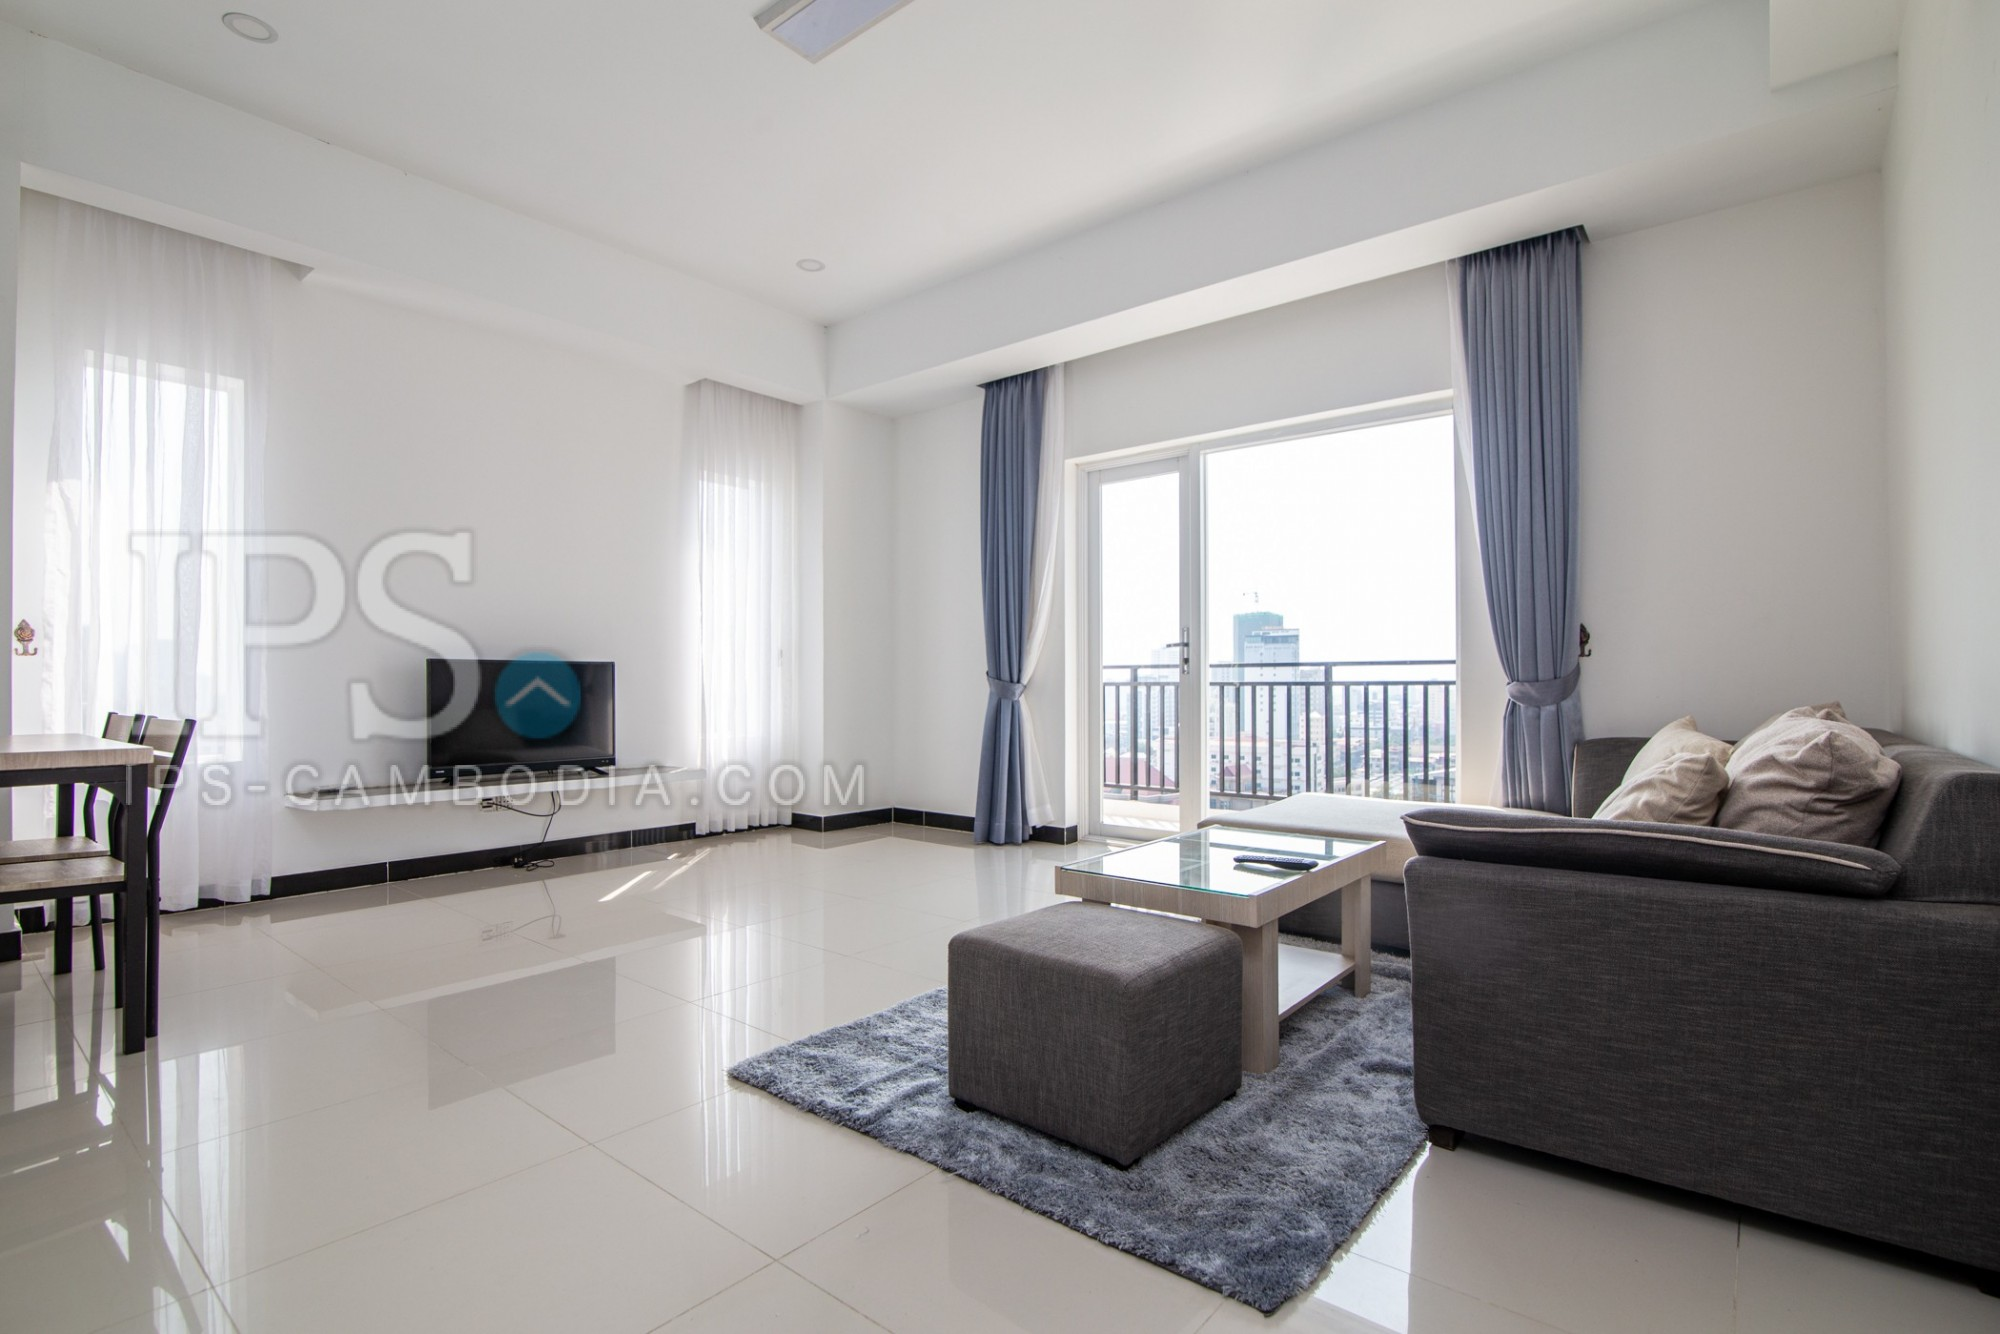 2 Bedroom Serviced Apartment For Rent - Tonle Bassac, Chamkarmorn, Phnom Penh